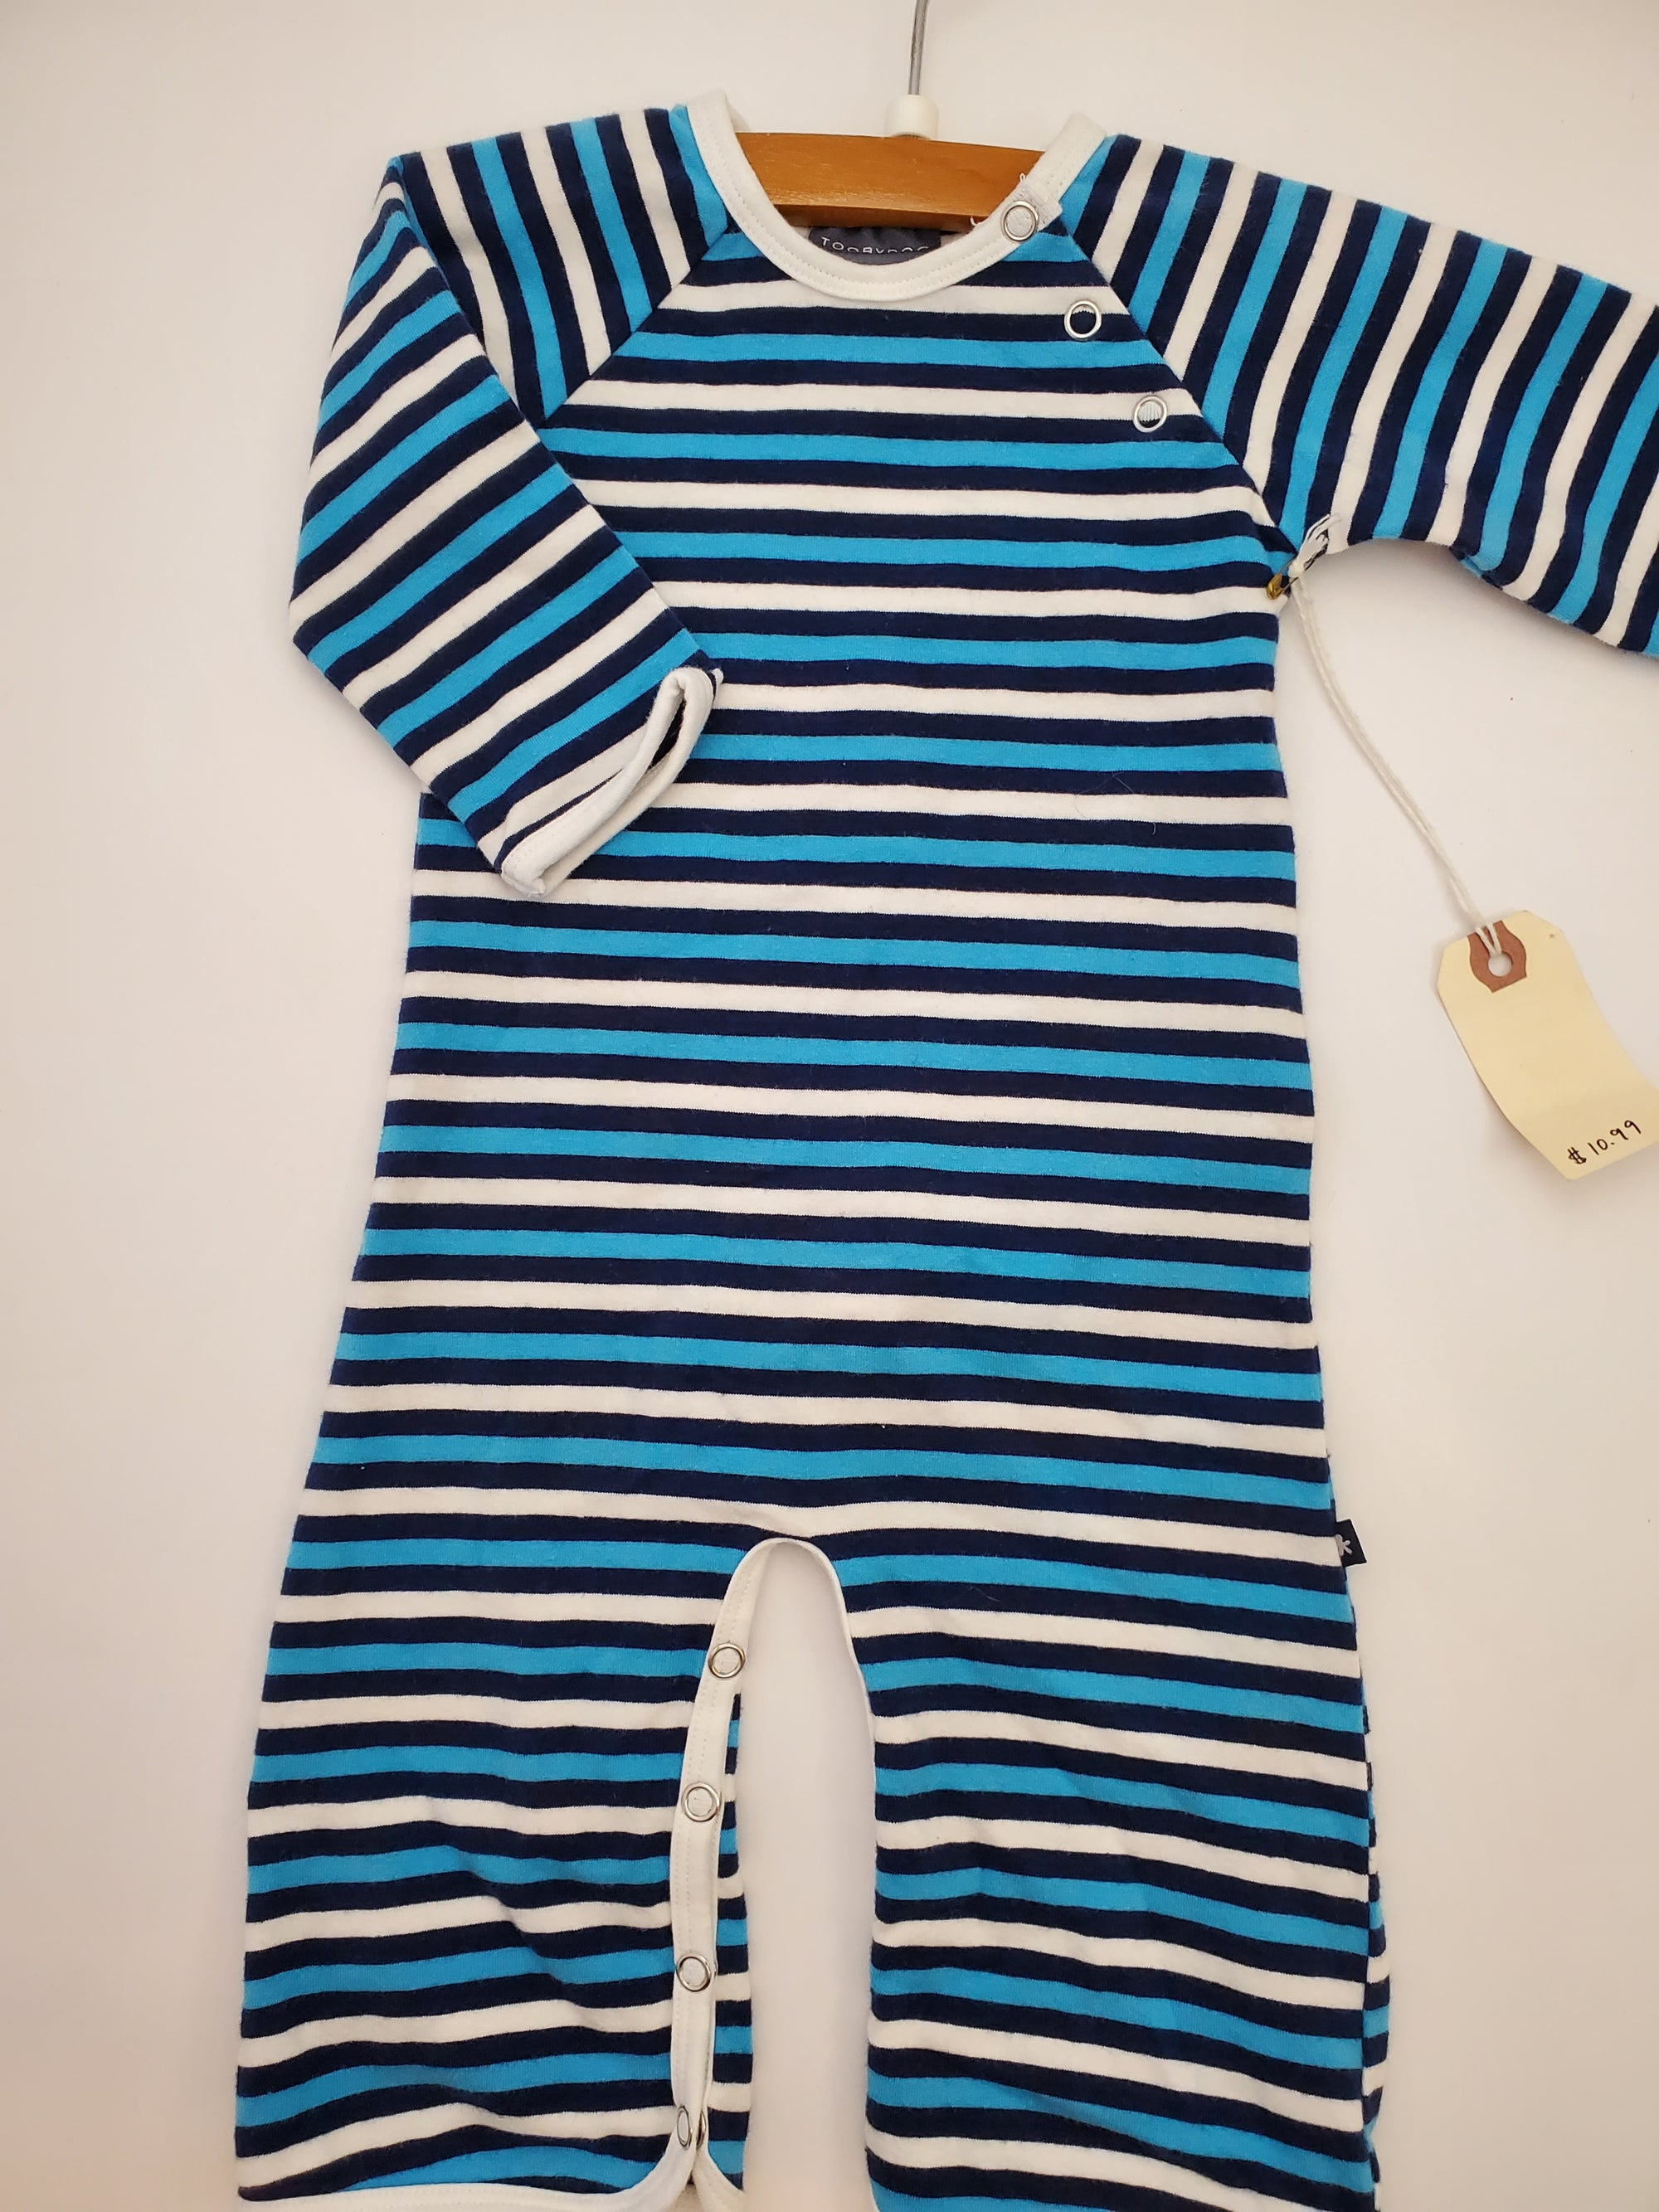 Resale 6-12 m Toobydoo Blue Striped Playsuit